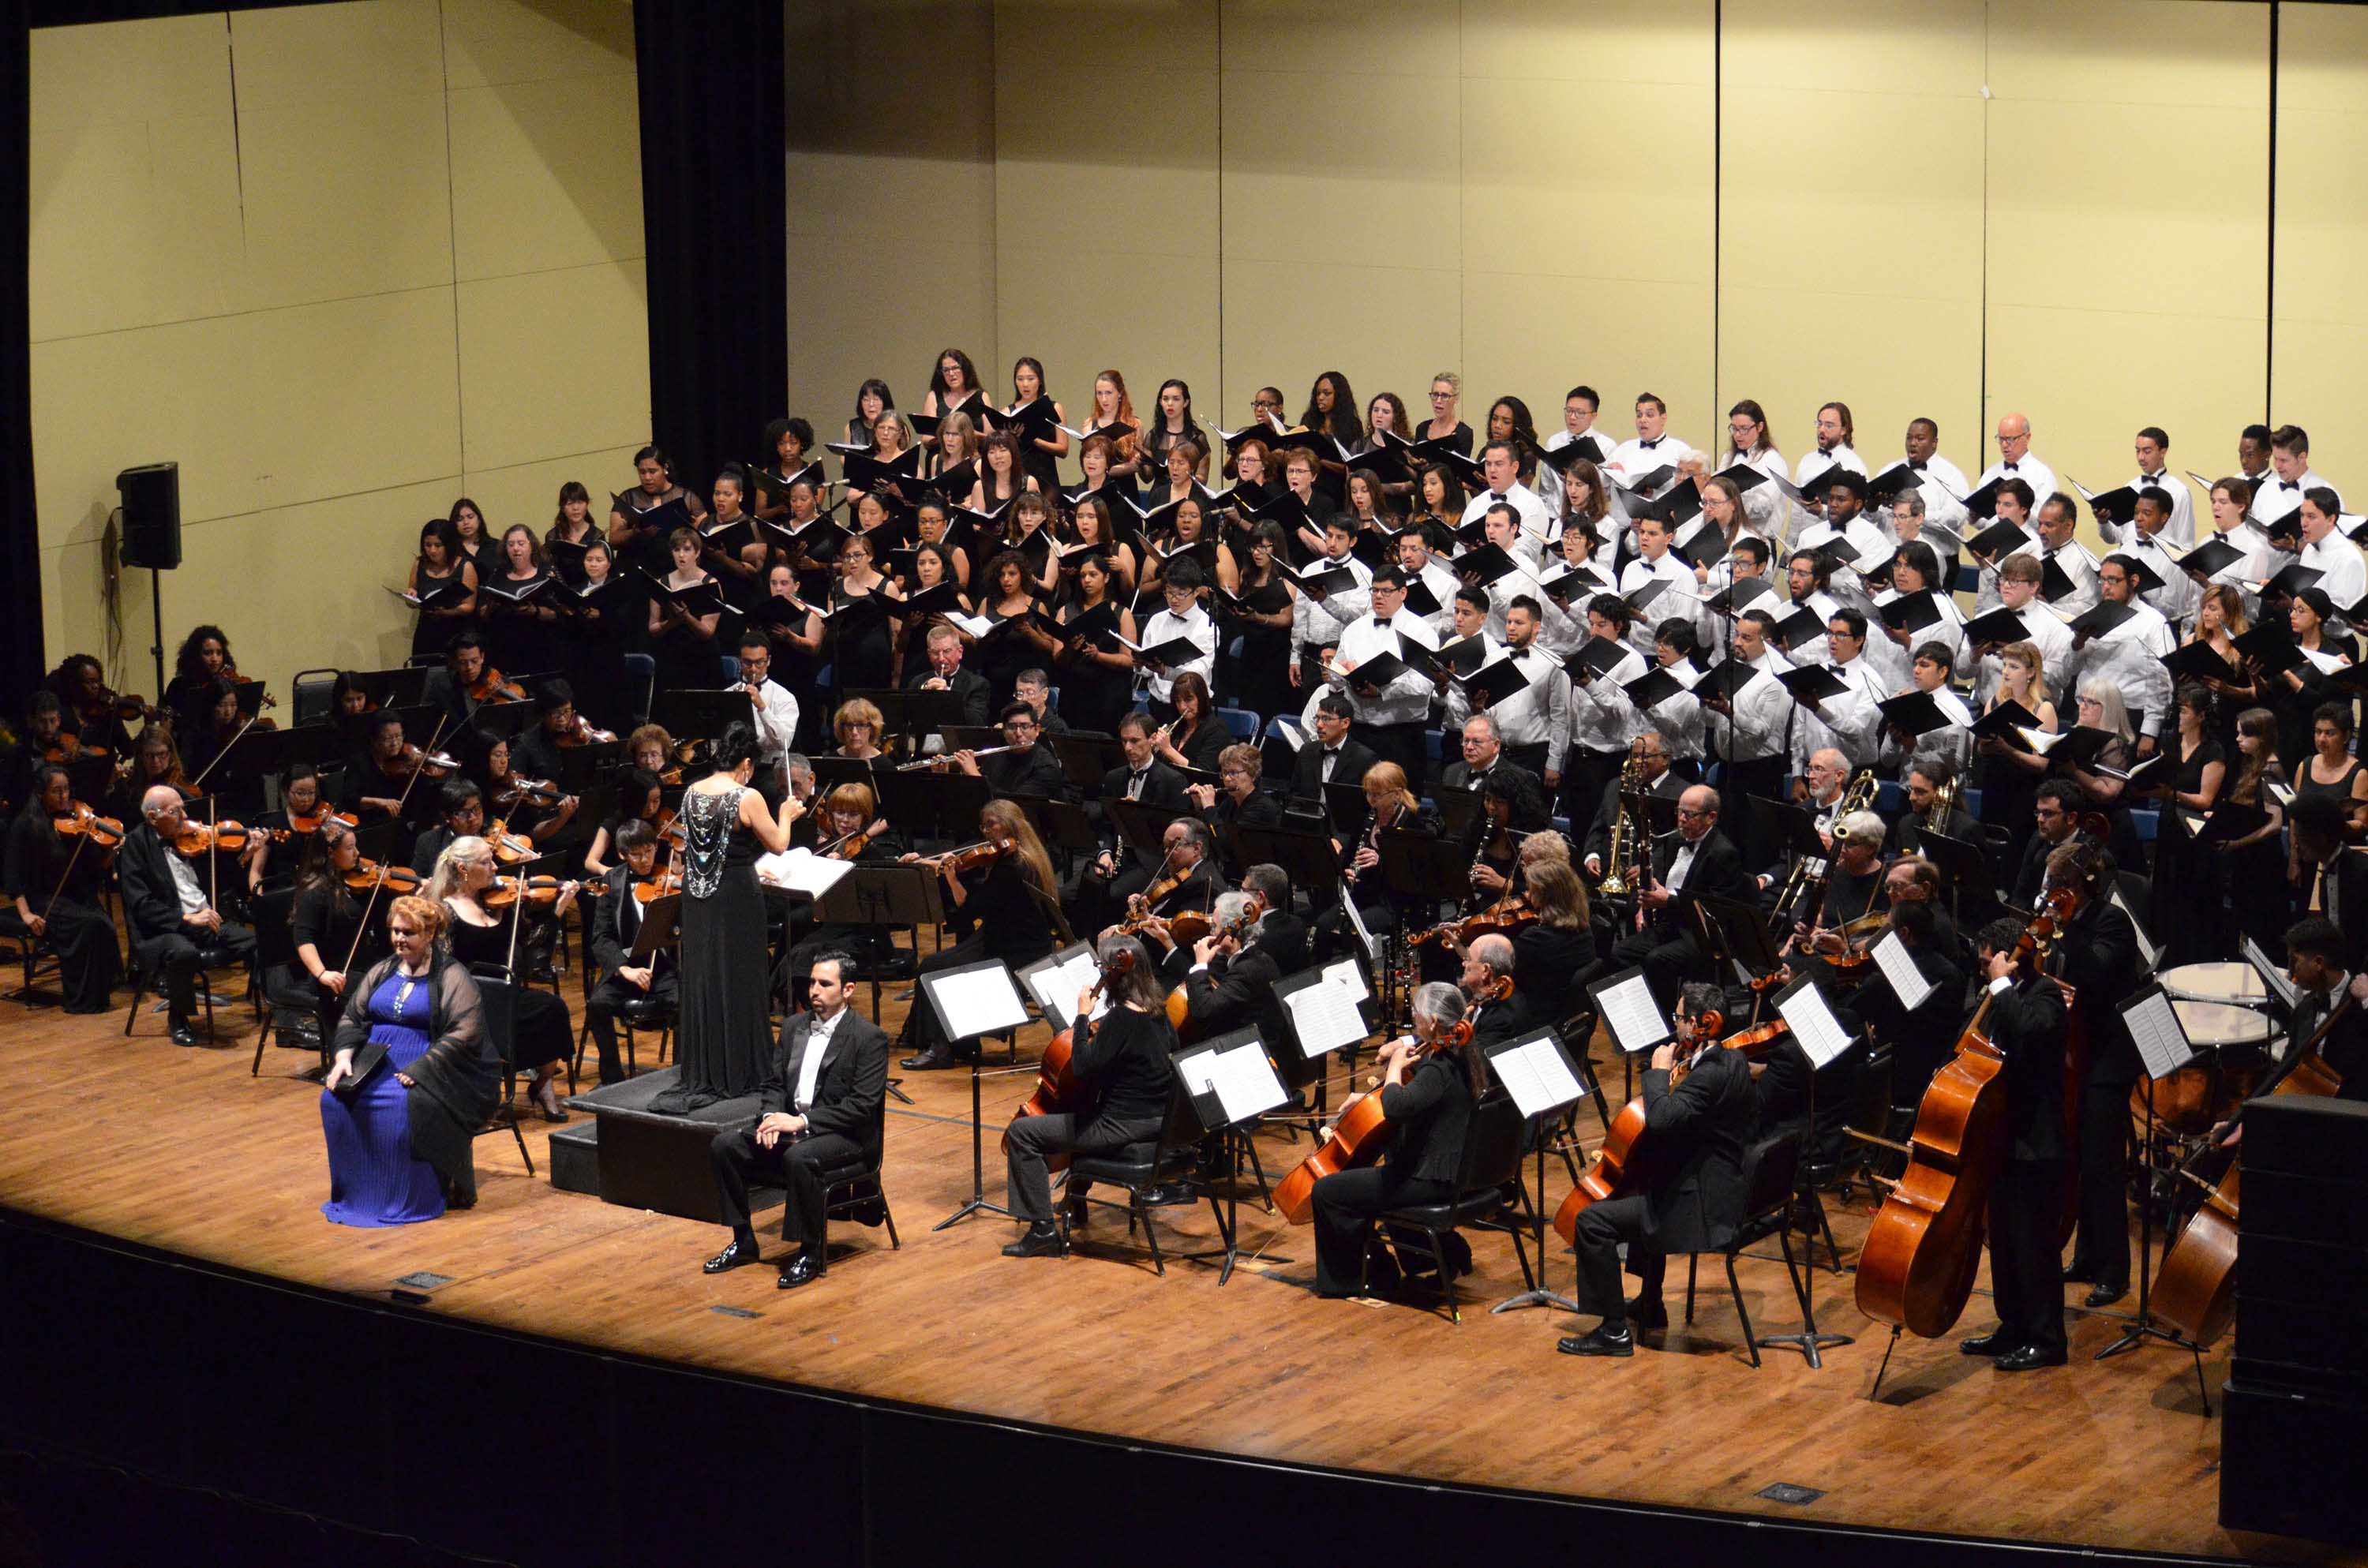 A variety of choral performances will be presented this fall, featuring highlights of student work and holiday themes.